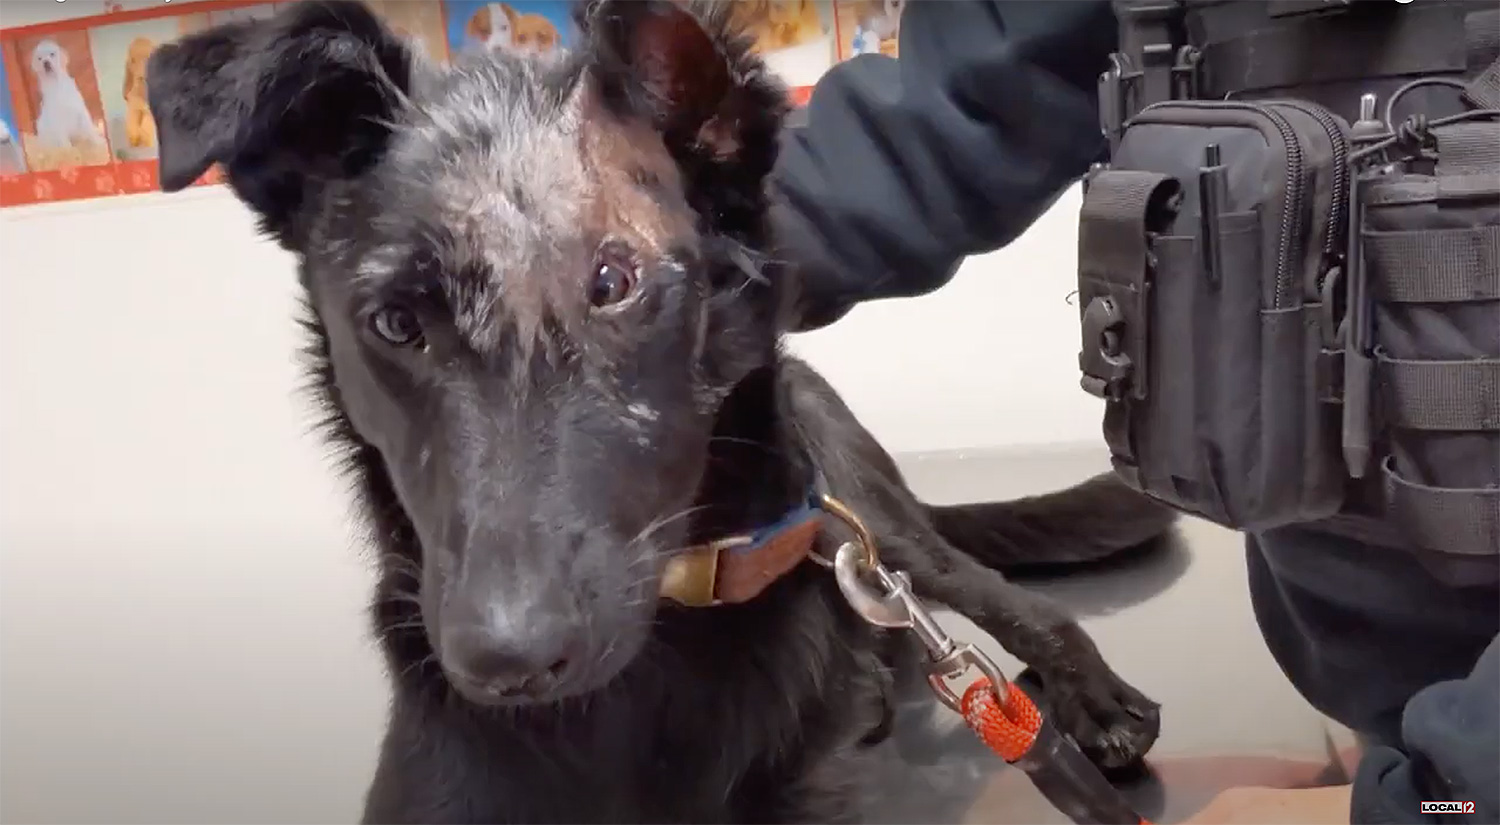 Dog severely burned will now be trained to comfort child burn victims